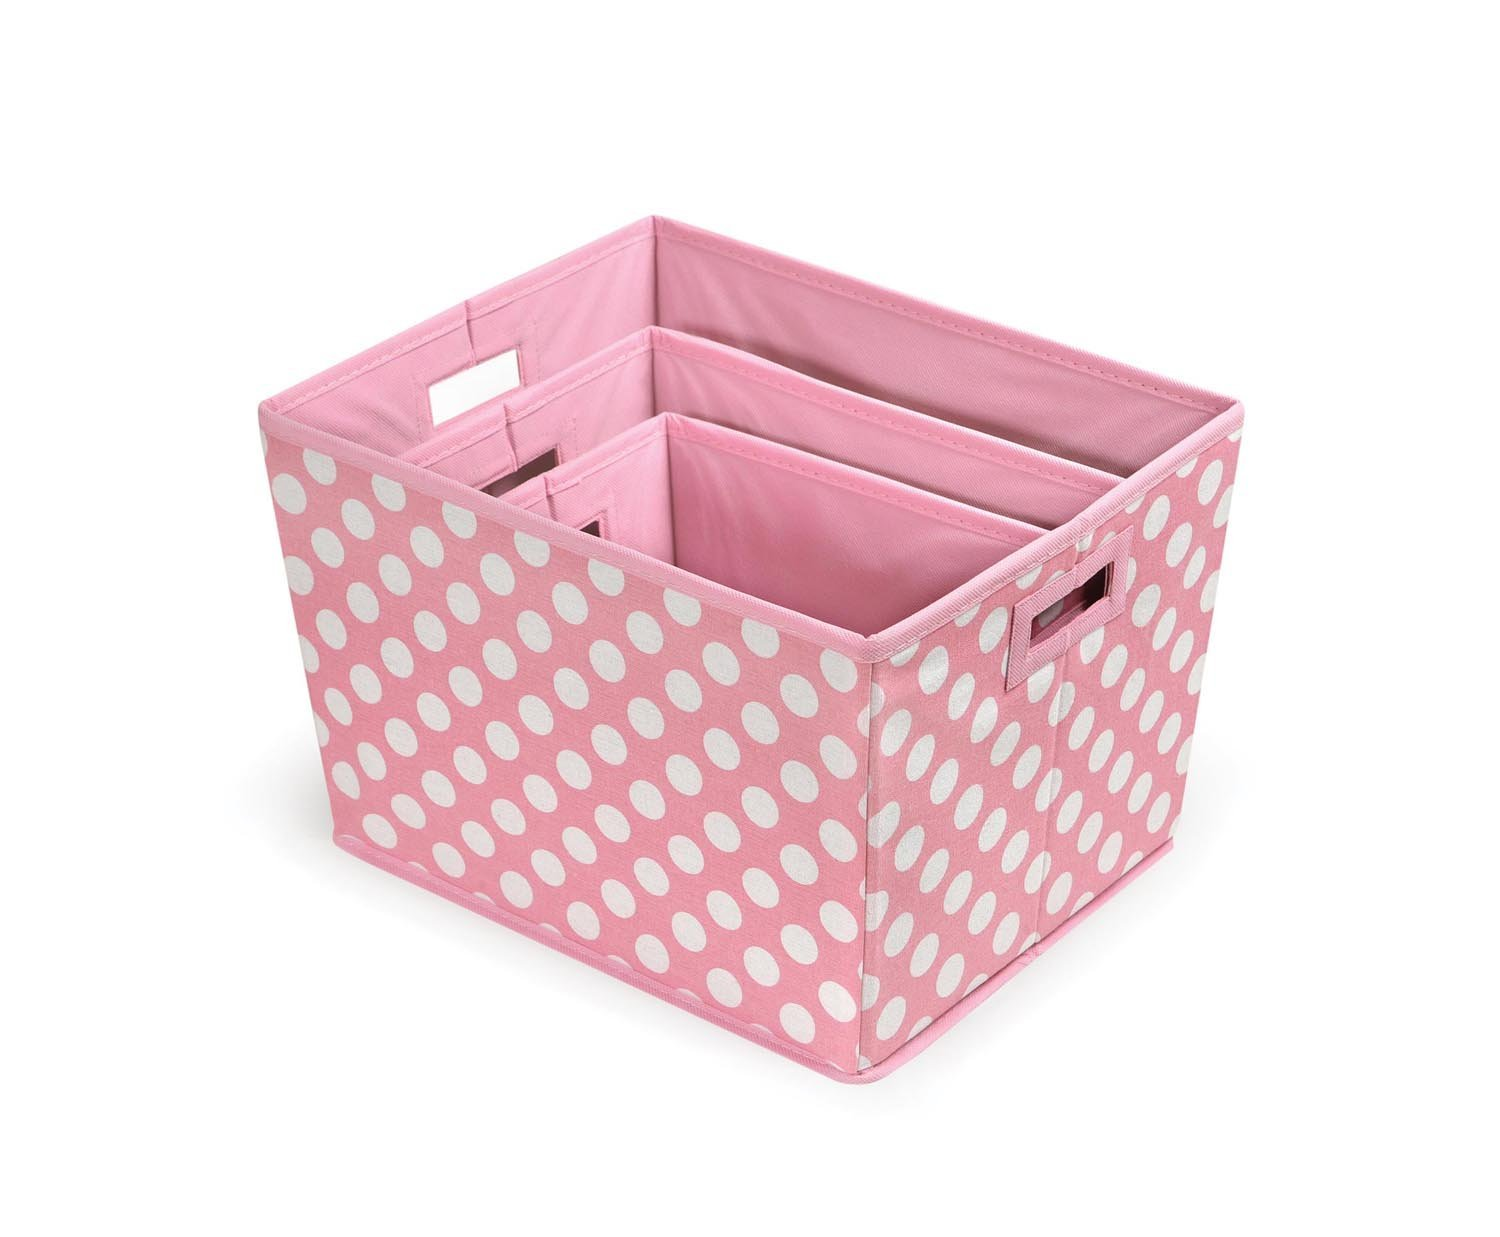 Badger Basket 3 Pack Polka Dot Nesting Trapezoid Folding Baskets, Pink by